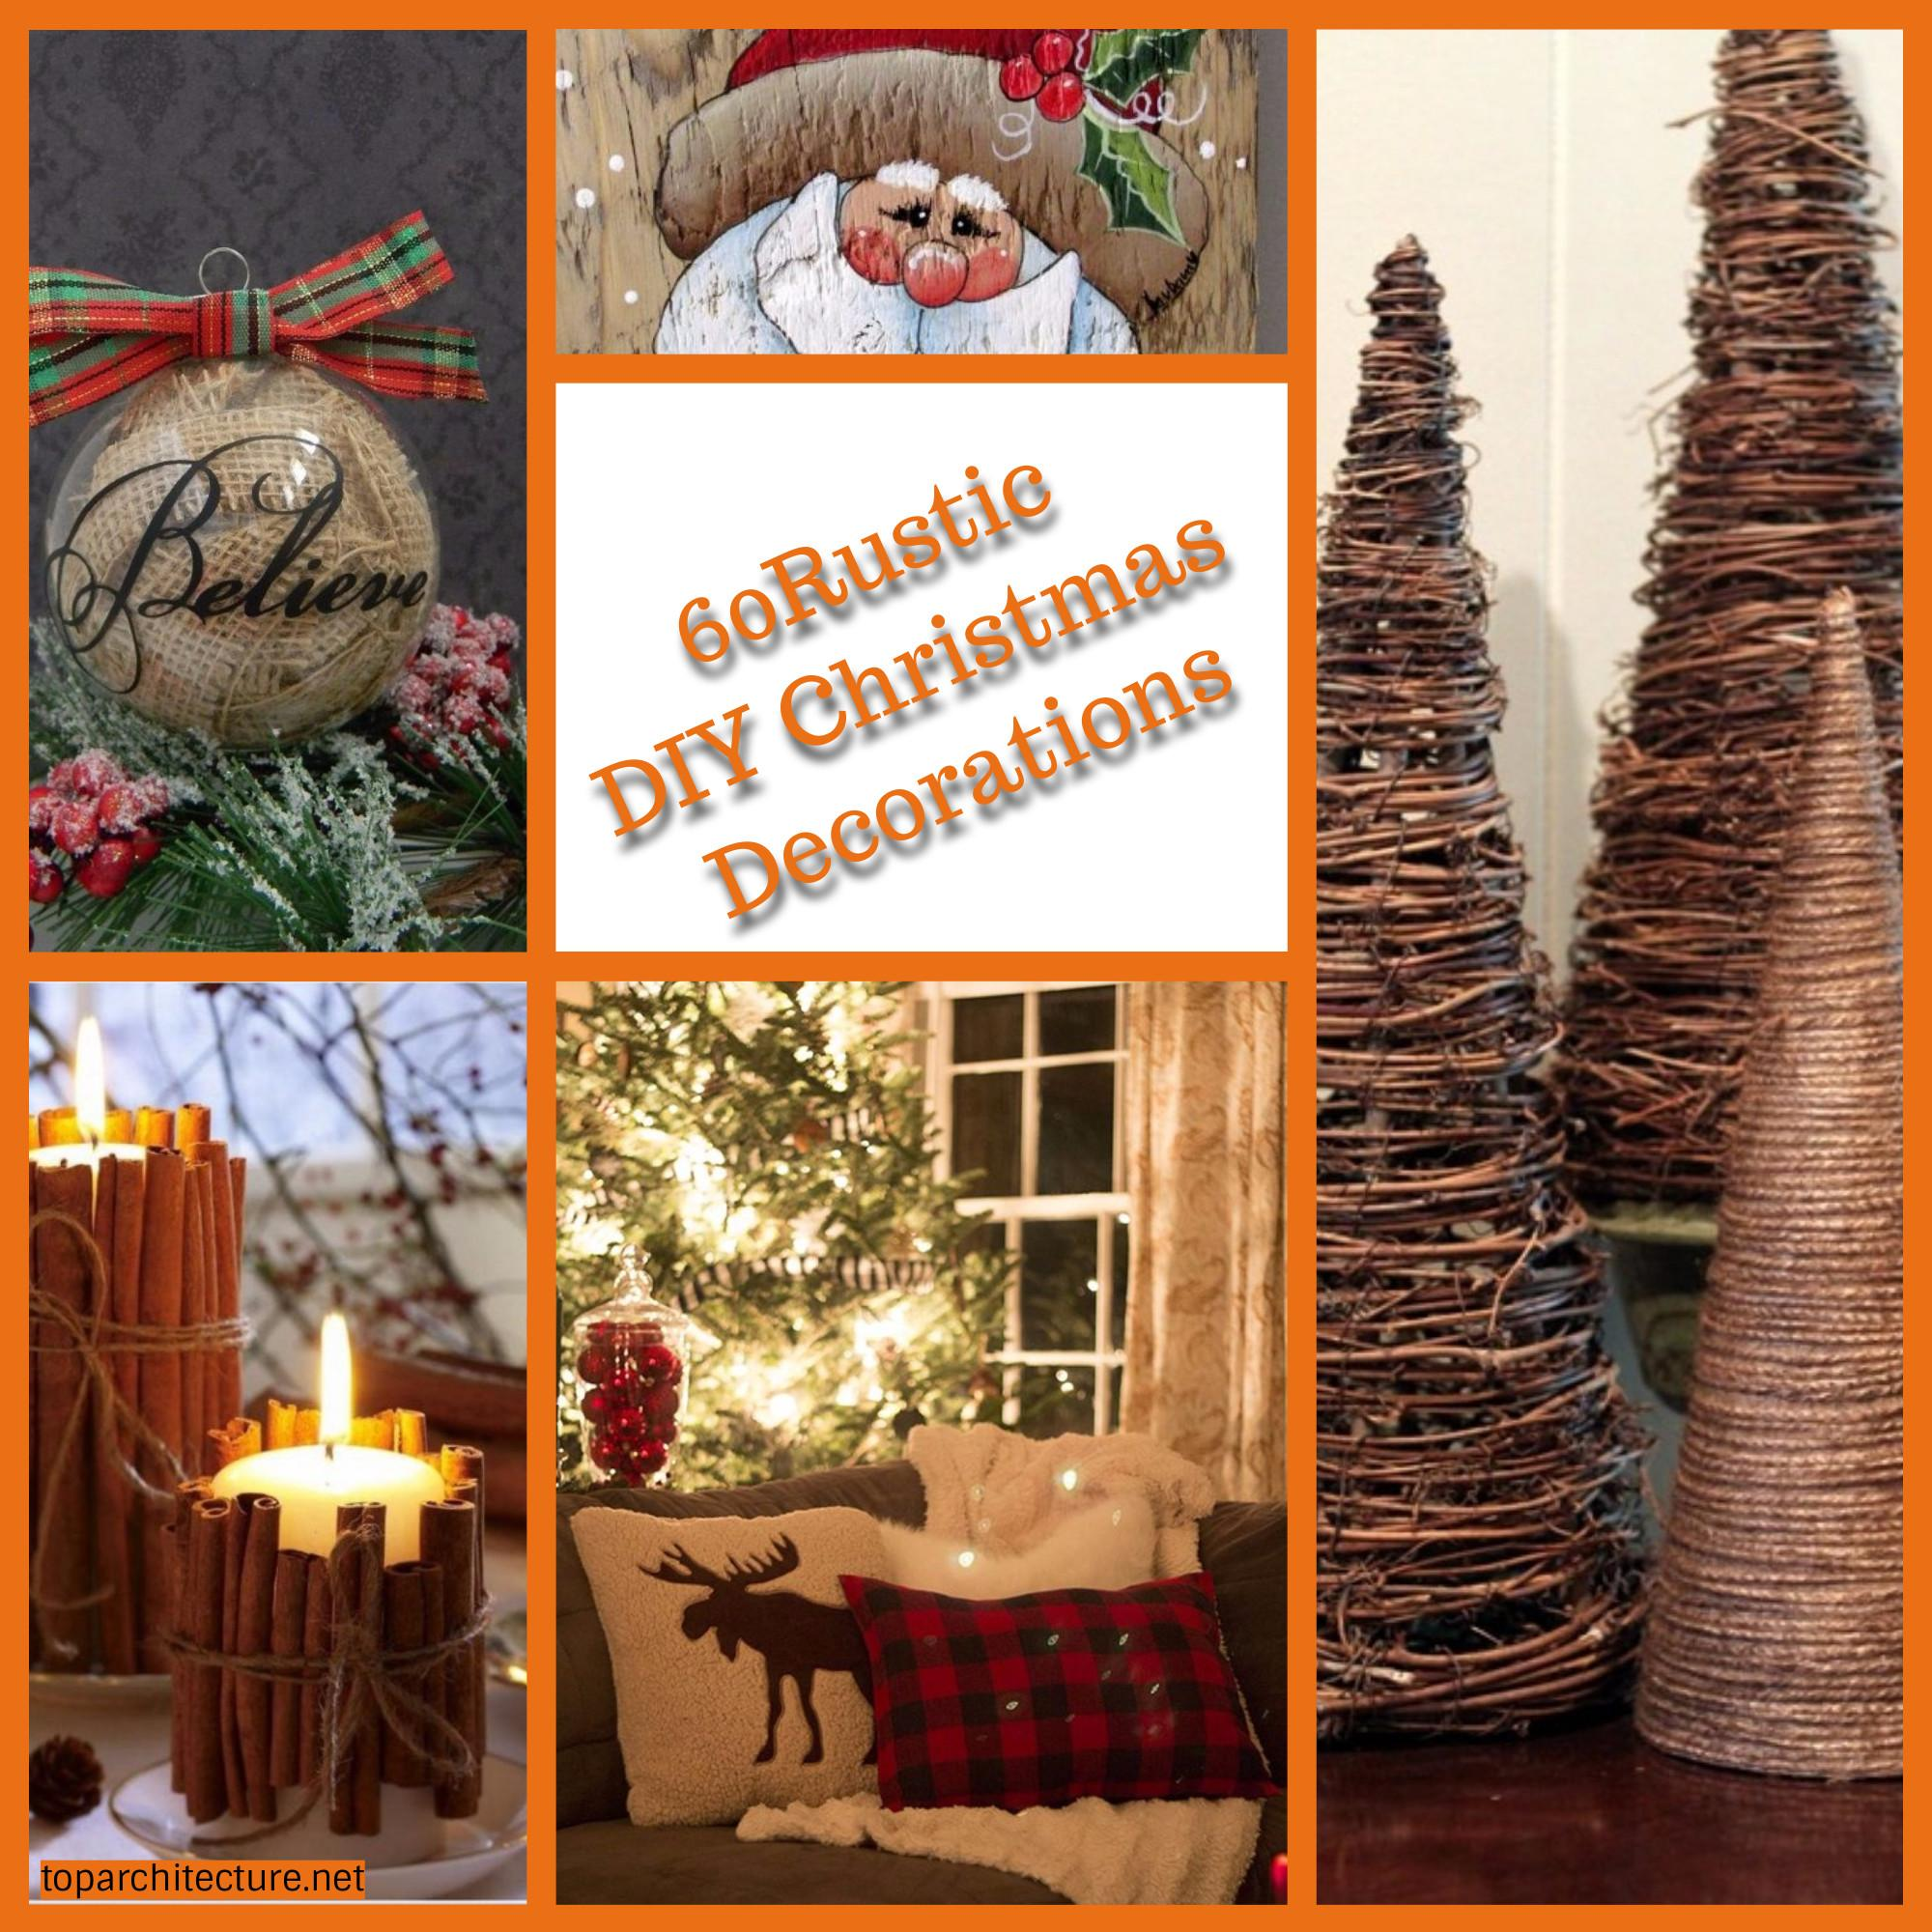 Rustic Diy Christmas Decorations Toparchitecture